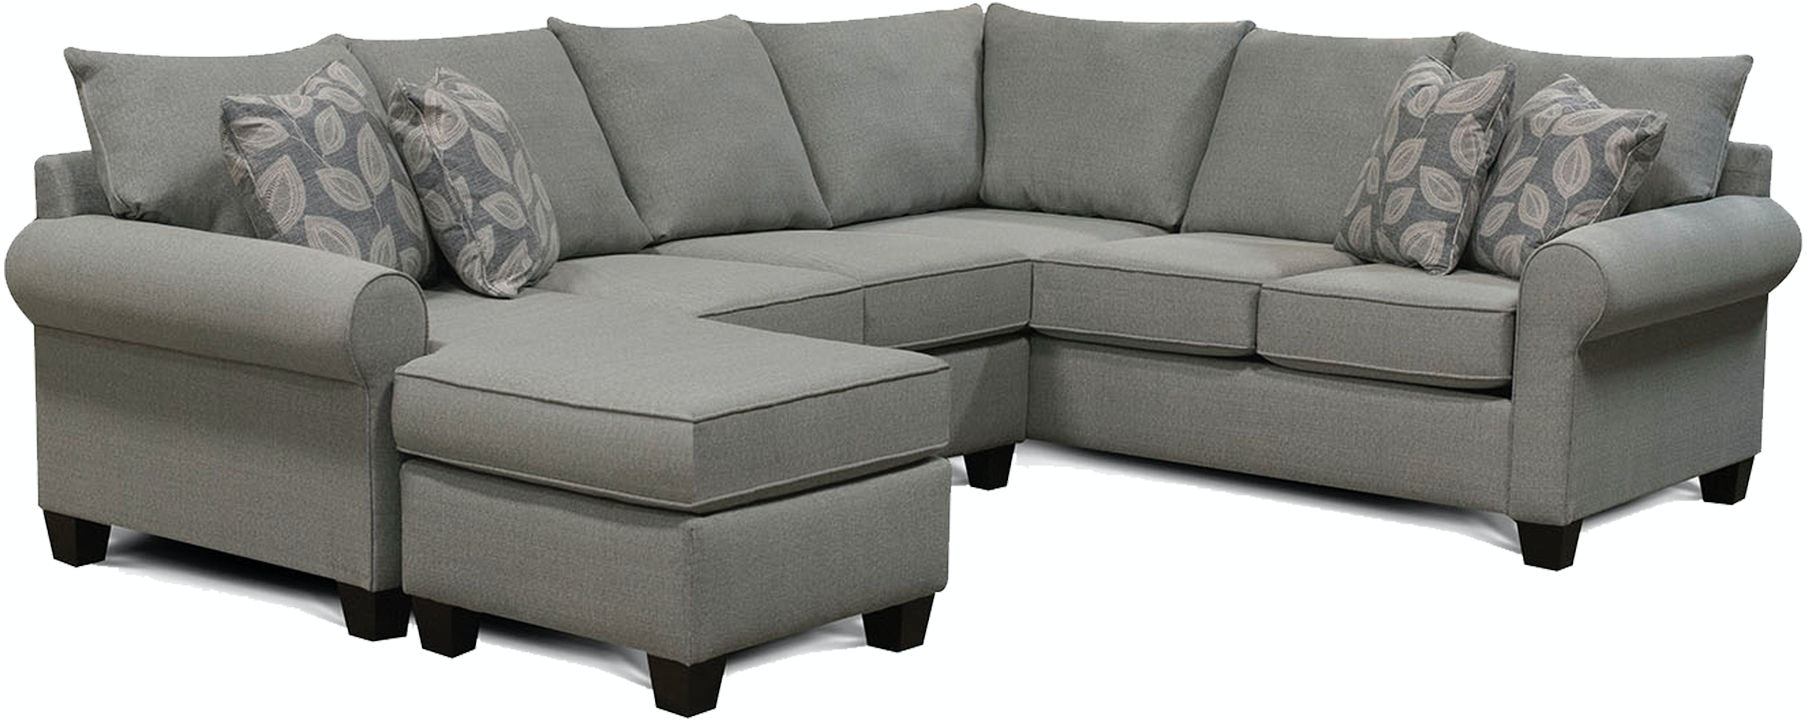 England Living Room Clementine Sectional 6j00 Sect